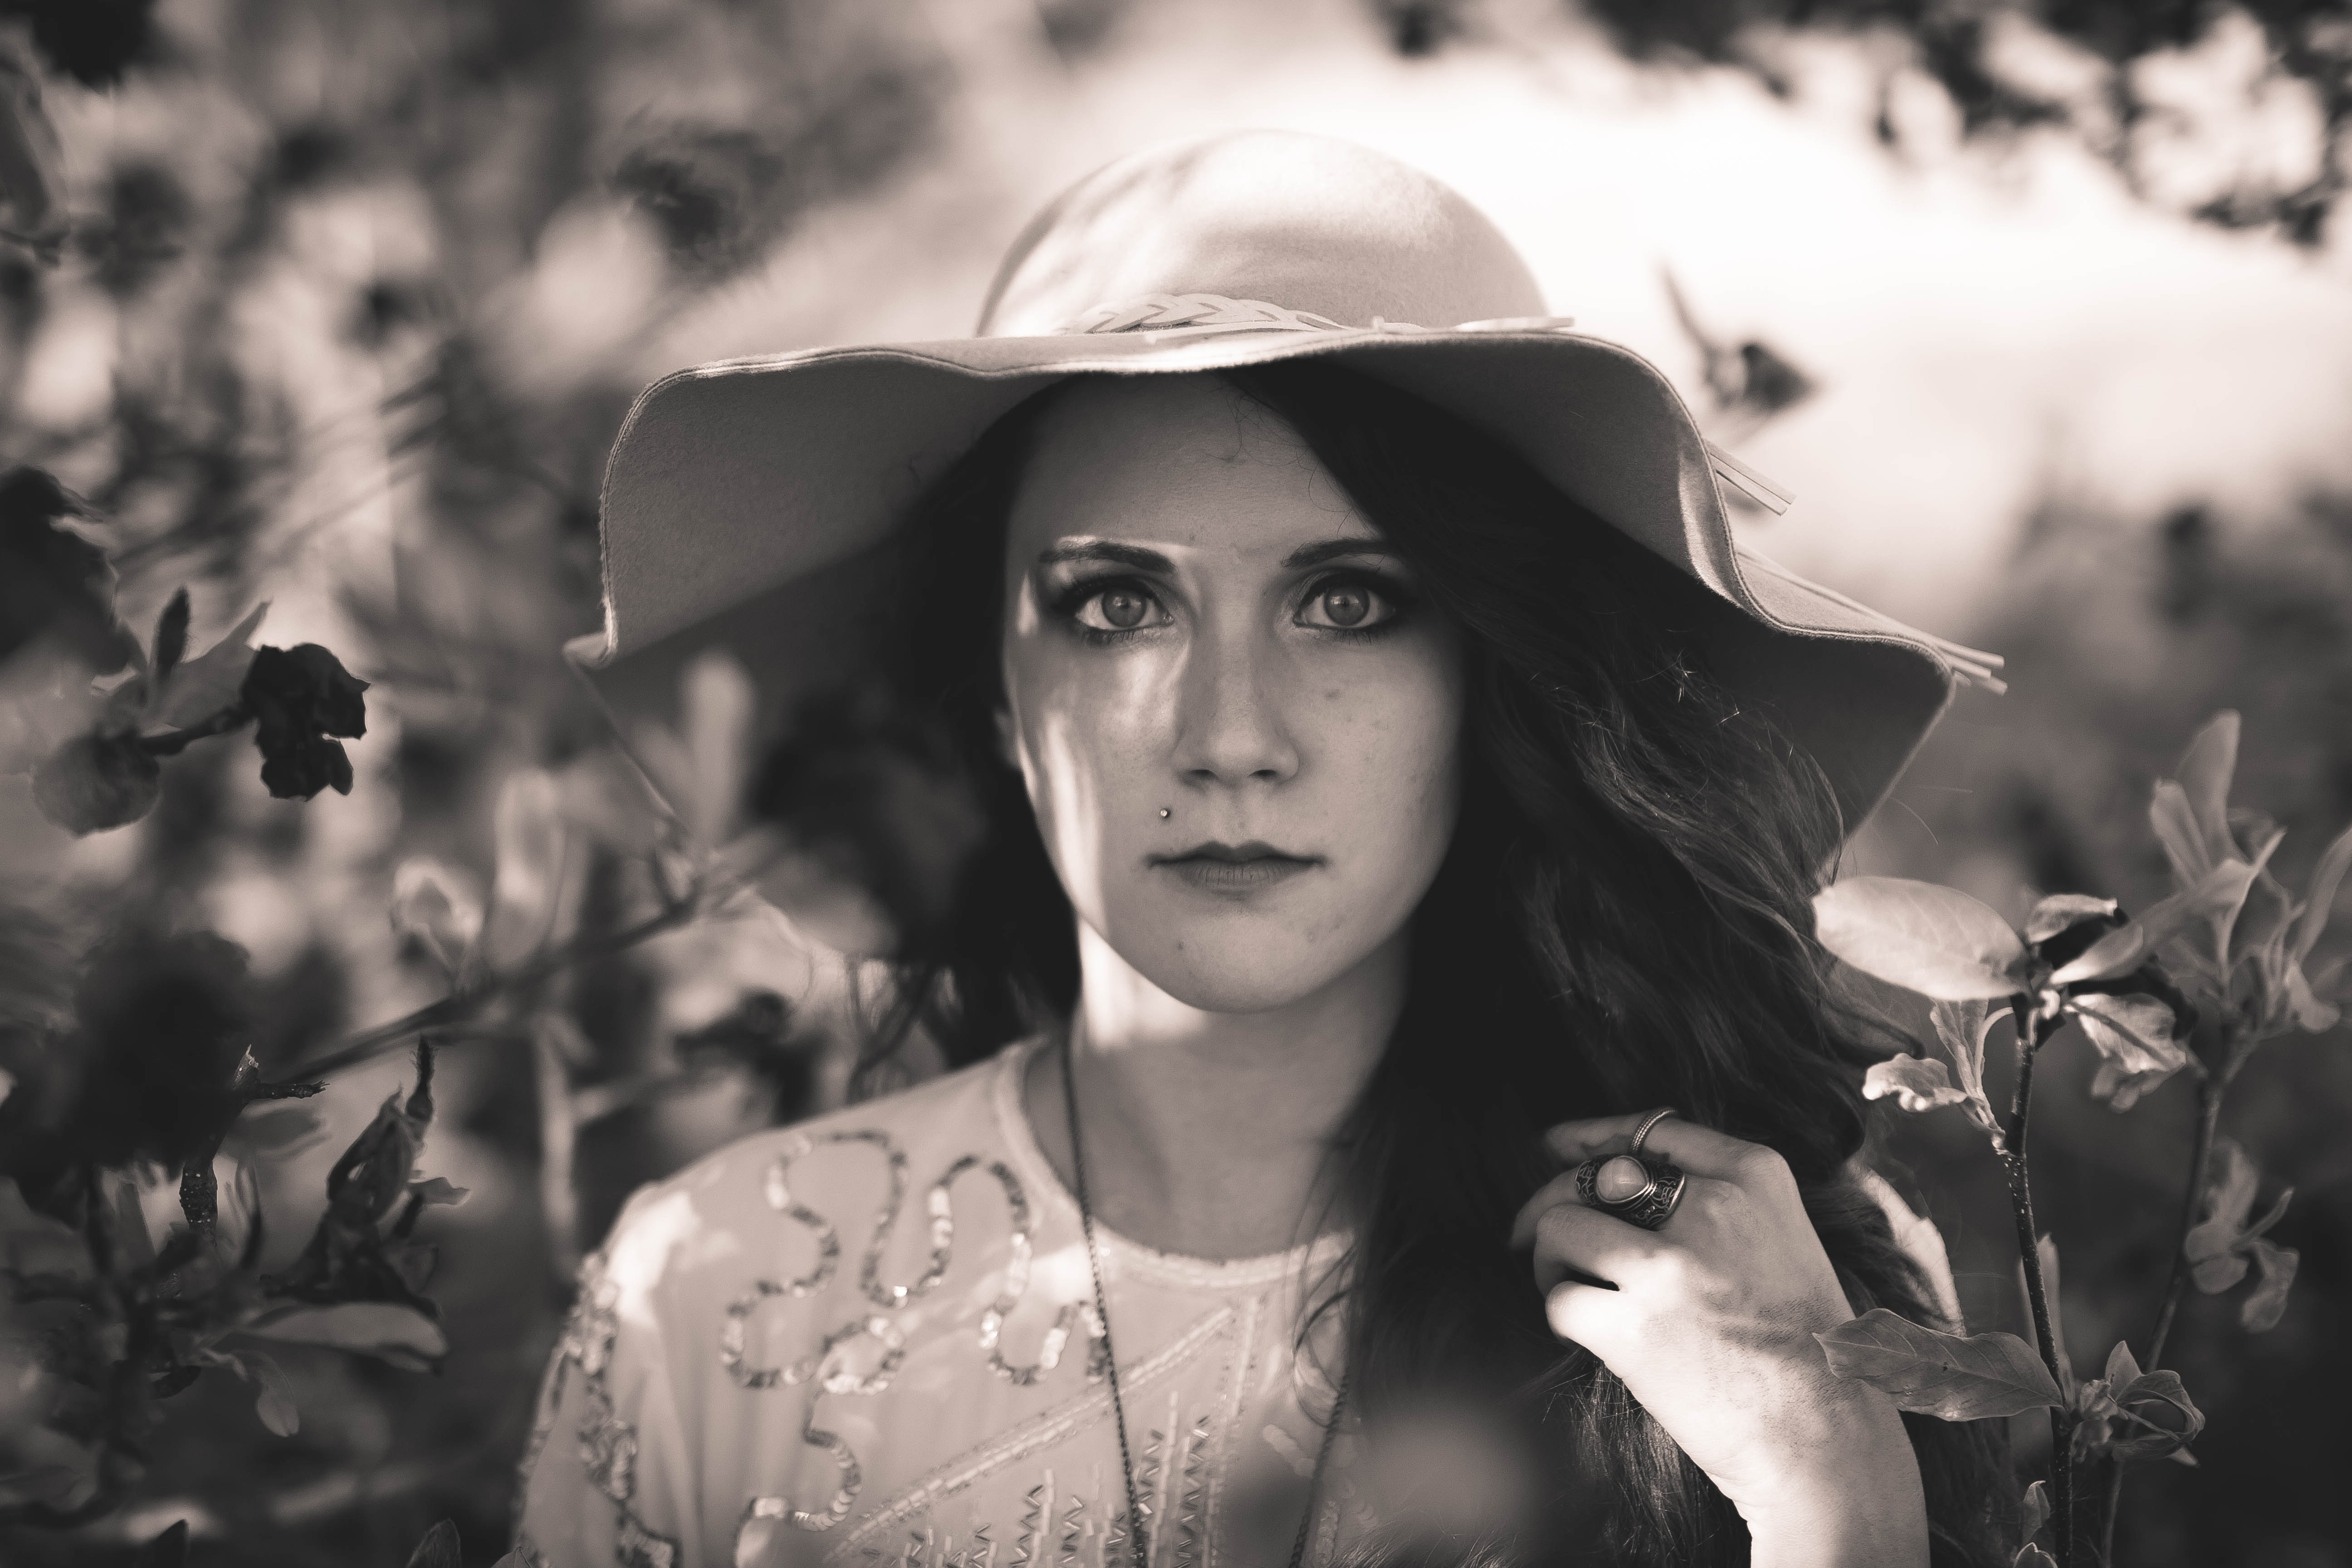 grayscale photography of woman wearing sun hat